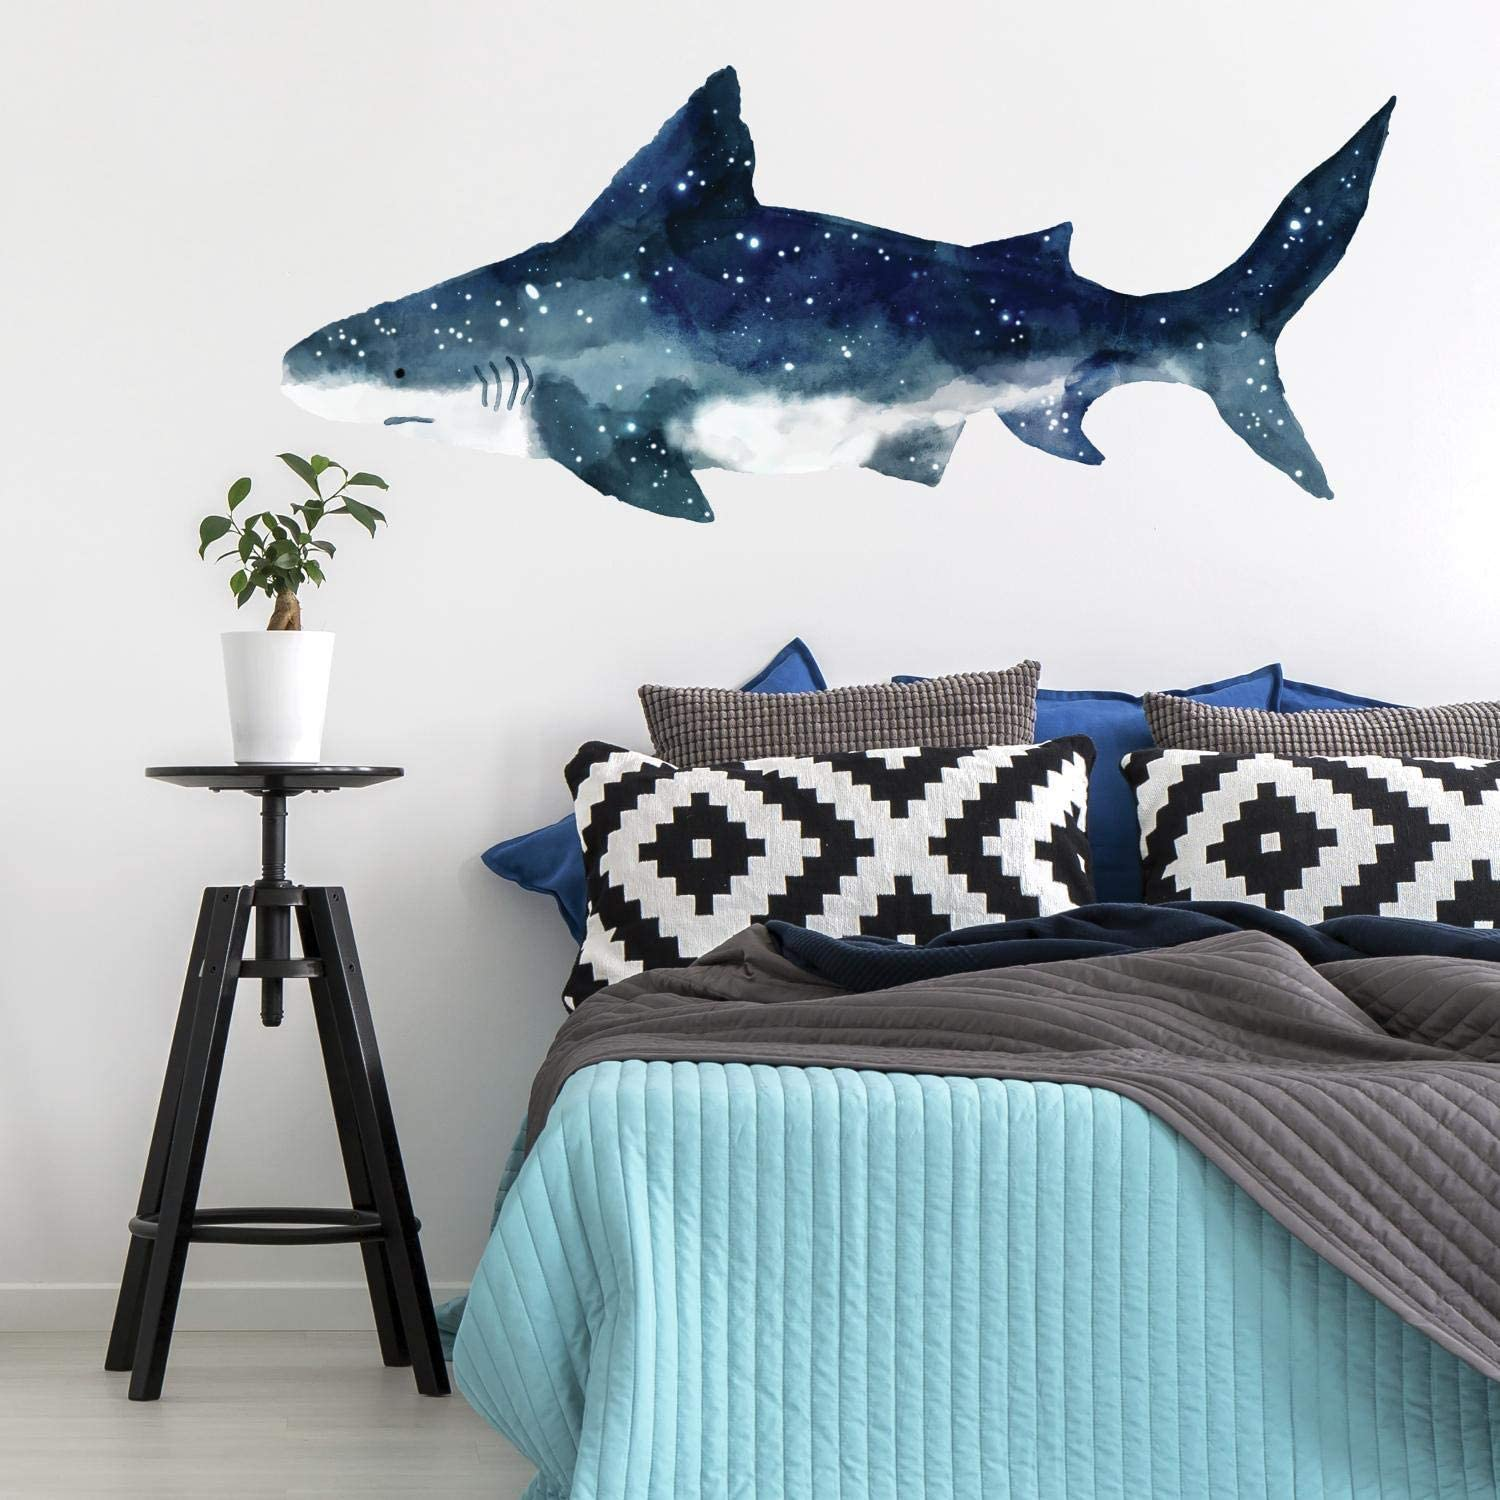 RoomMates Shark Peel And Stick Giant Wall Decals